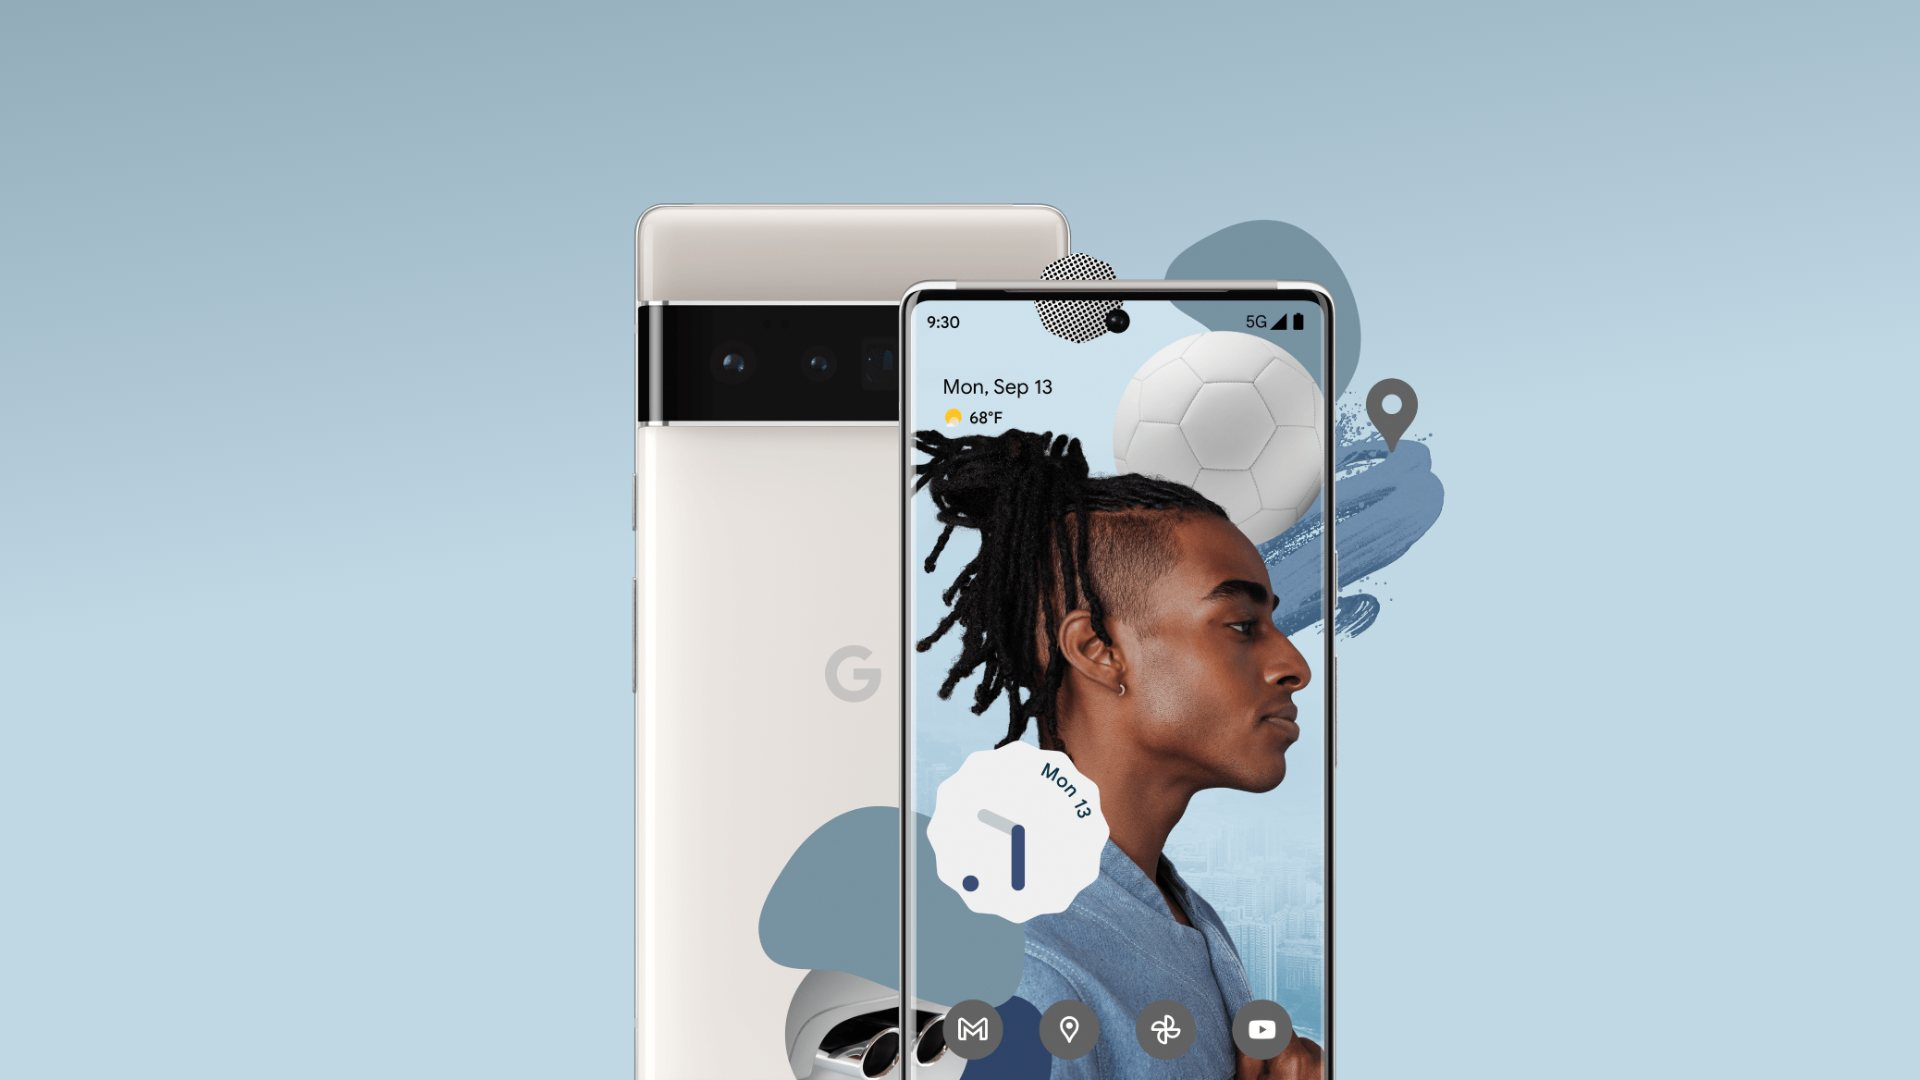 More evidence to further confirm Pixel 6 October launch date